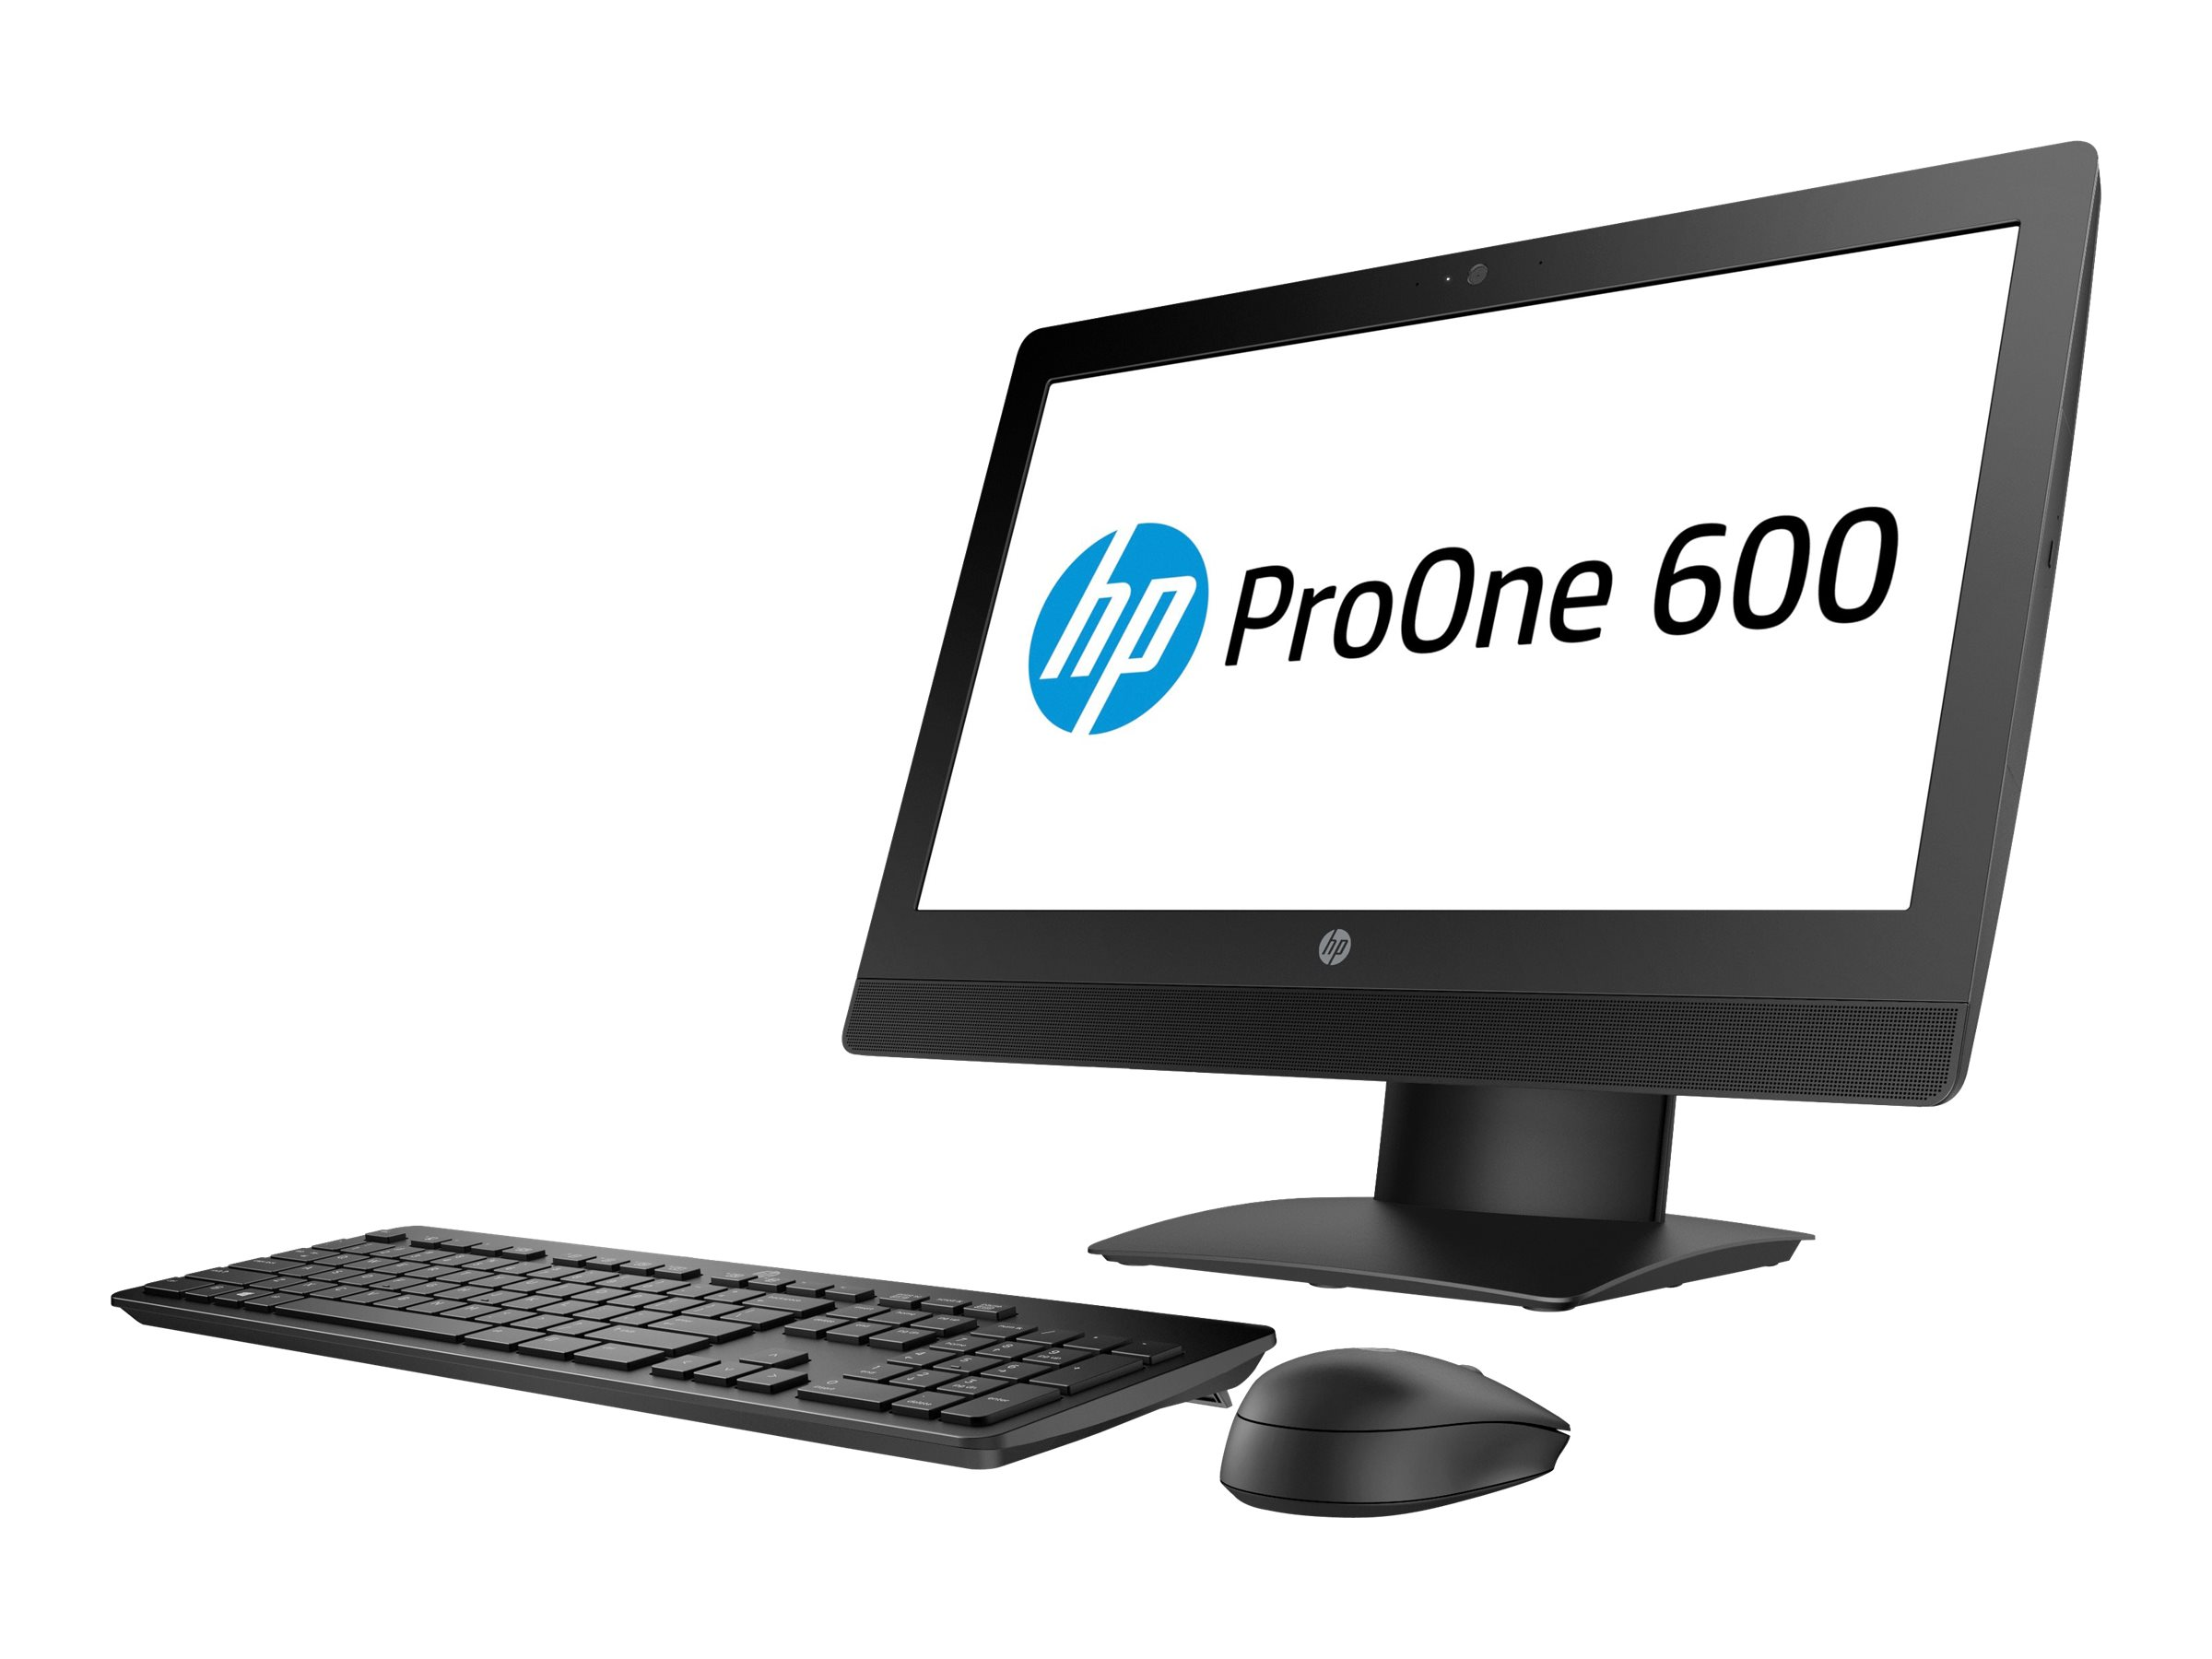 HP ProOne 600 G3 - All-in-One (Komplettlösung) - 1 x Core i5 7500 / 3.4 GHz - RAM 8 GB - SSD 256 GB - NVMe